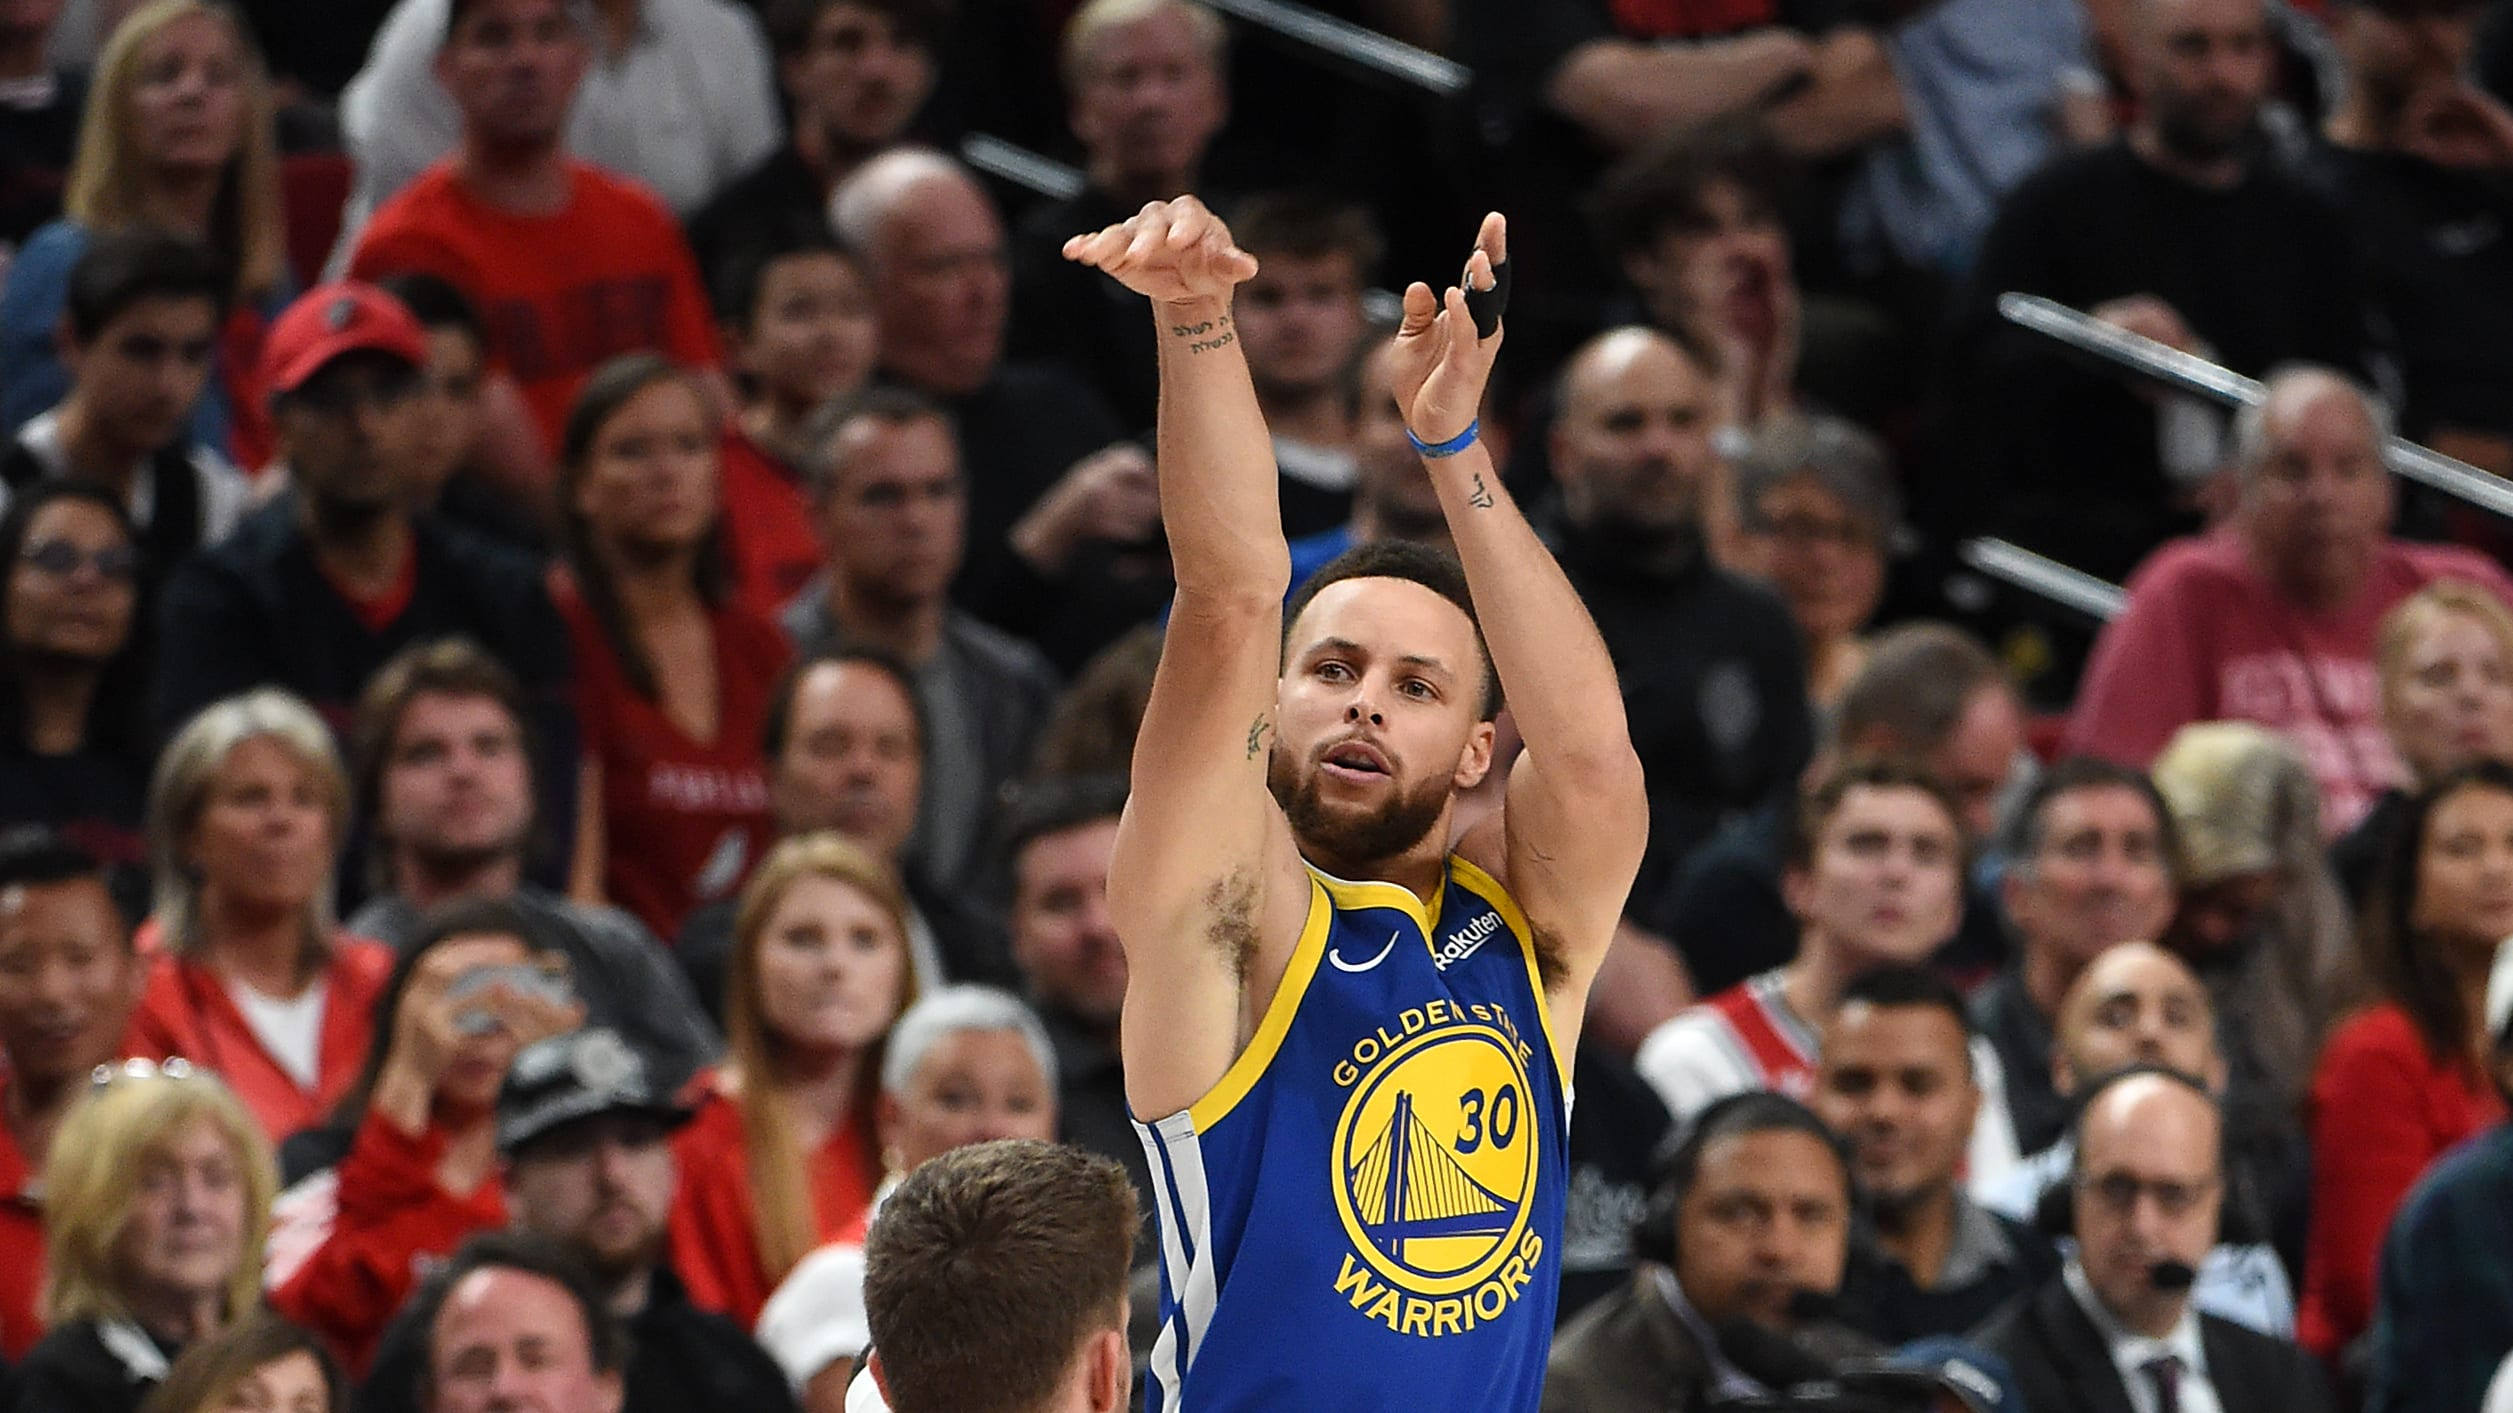 PORTLAND, OREGON - MAY 18: Stephen Curry #30 of the Golden State Warriors shoots the ball against Meyers Leonard #11 of the Portland Trail Blazers in game three of the NBA Western Conference Finals at Moda Center on May 18, 2019 in Portland, Oregon. NOTE TO USER: User expressly acknowledges and agrees that, by downloading and or using this photograph, User is consenting to the terms and conditions of the Getty Images License Agreement. (Photo by Steve Dykes/Getty Images)